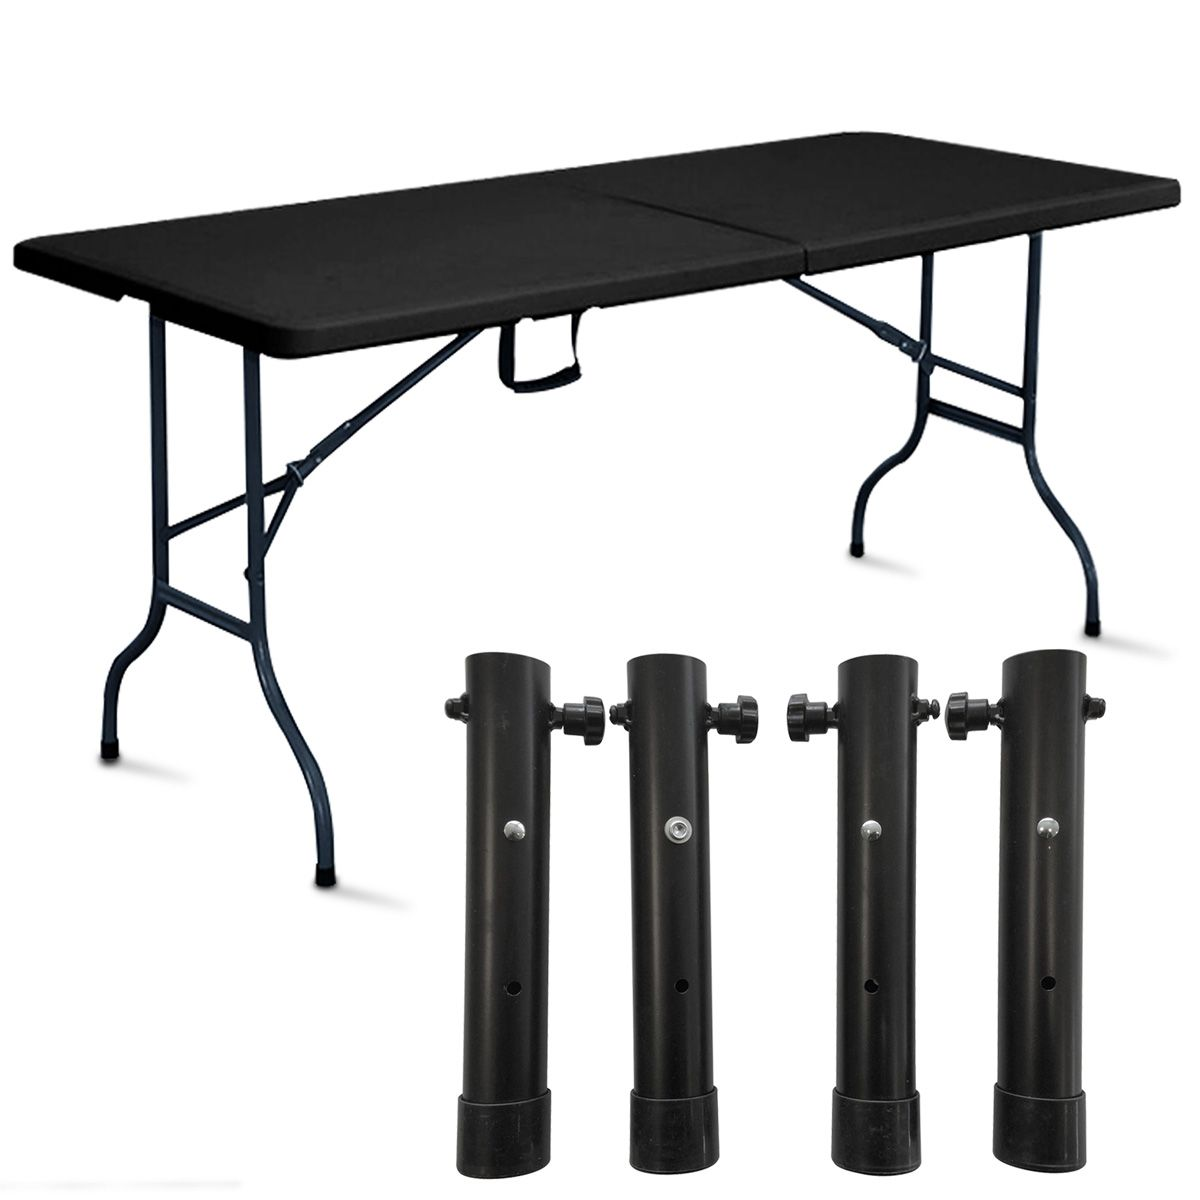 Pliante Professionnelle Table De Buffet Table De J35FK1ulTc